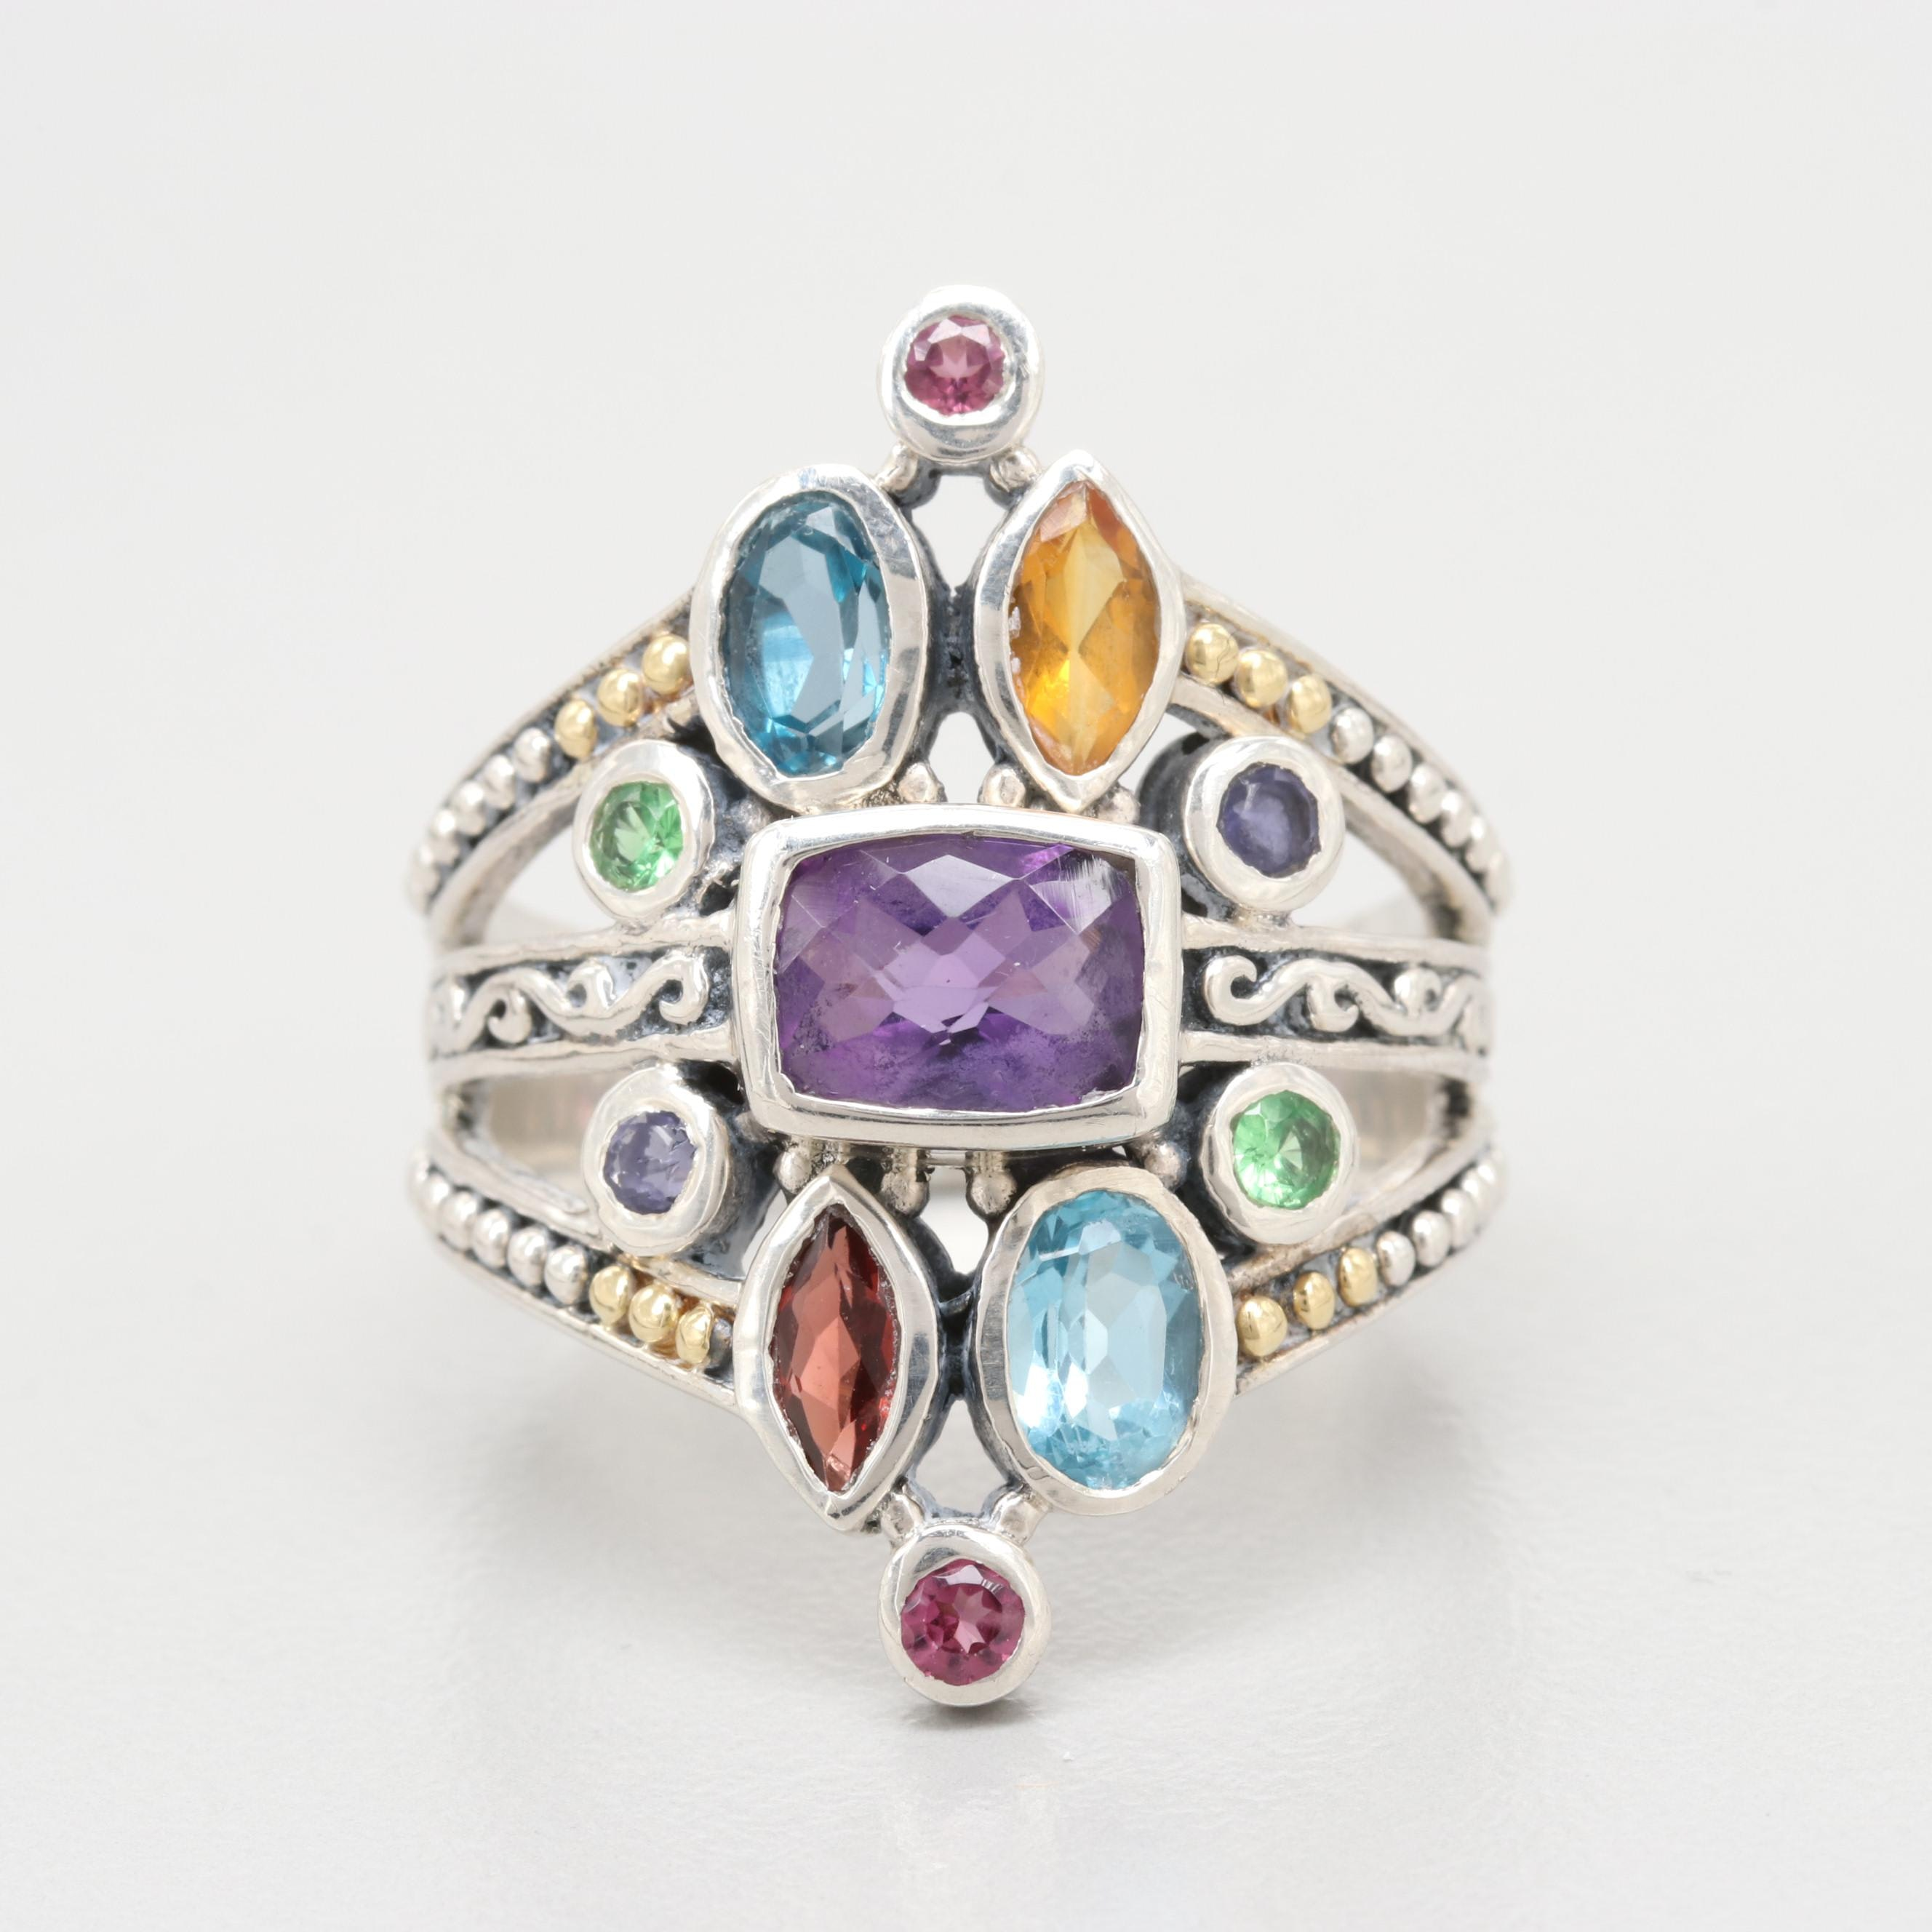 Robert Manse Sterling Silver Amethyst and Gemstone Ring with 18K Gold Accents